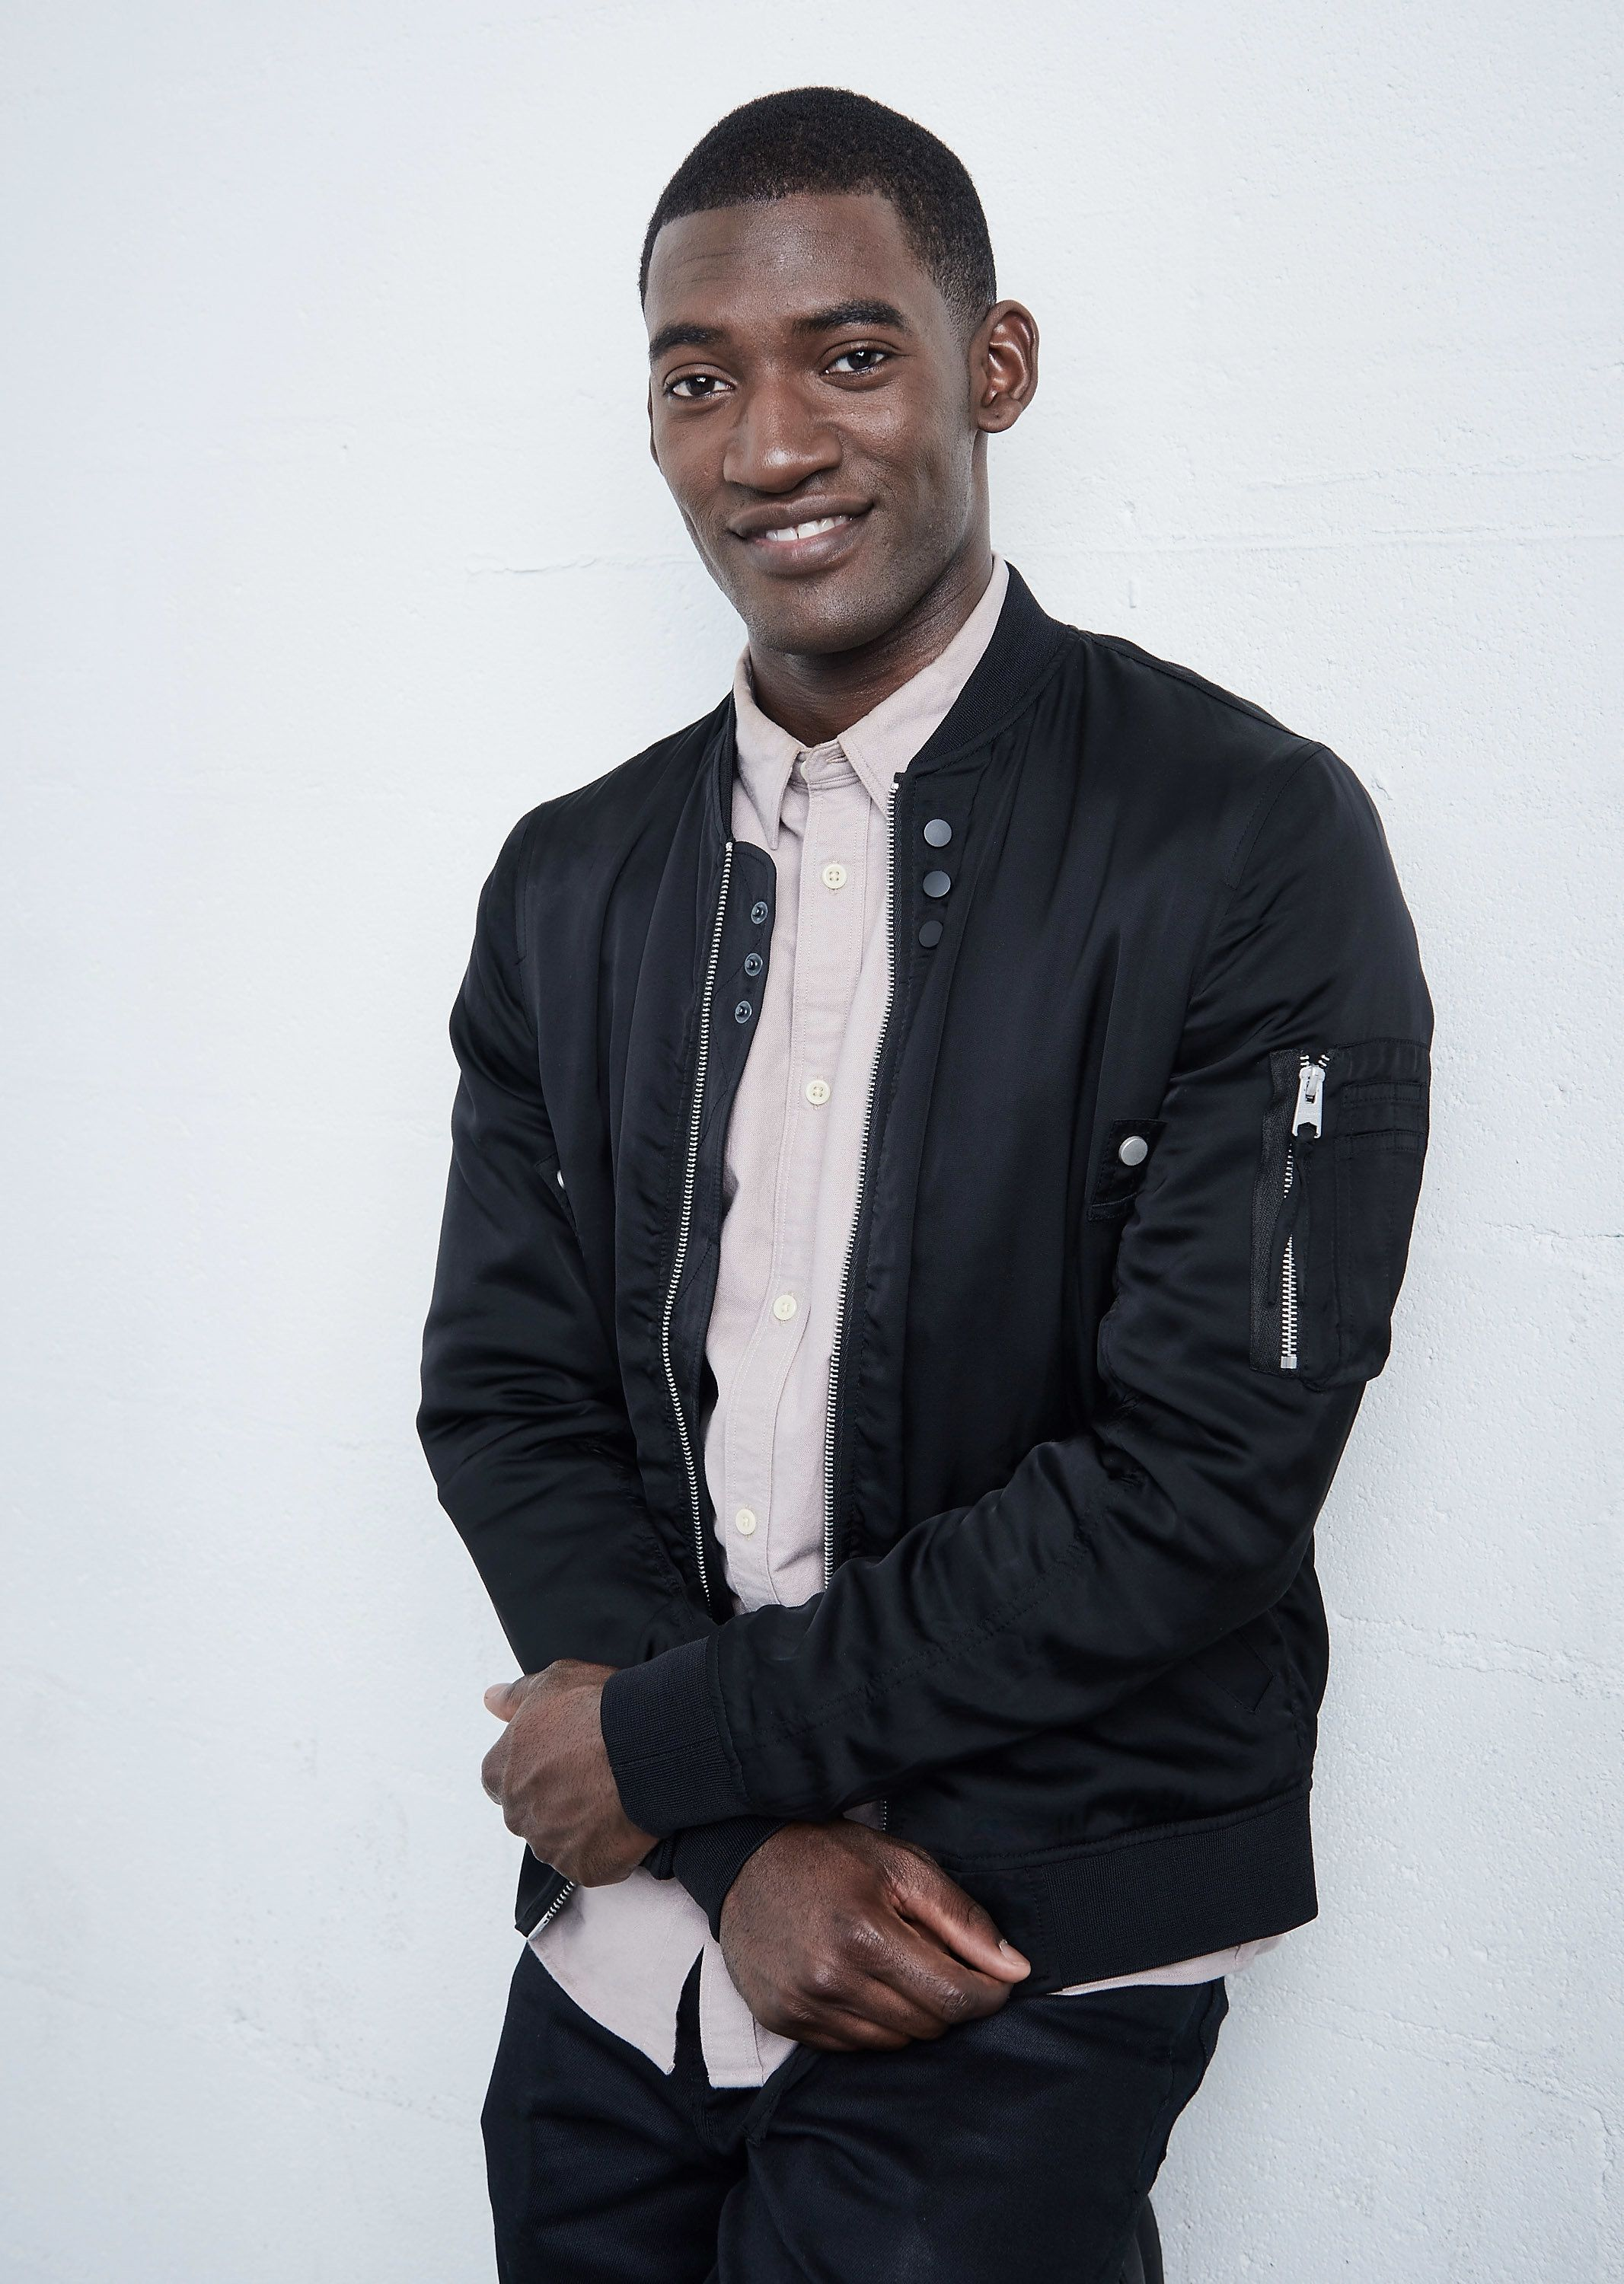 NEW YORK, NY - APRIL 21:  Actor Malachi Kirby from 'Roots' poses at the Tribeca Film Festival Getty Images Studio on April 21, 2016 in New York City.  (Photo by Larry Busacca/Getty Images for the 2016 Tribeca Film Festival )